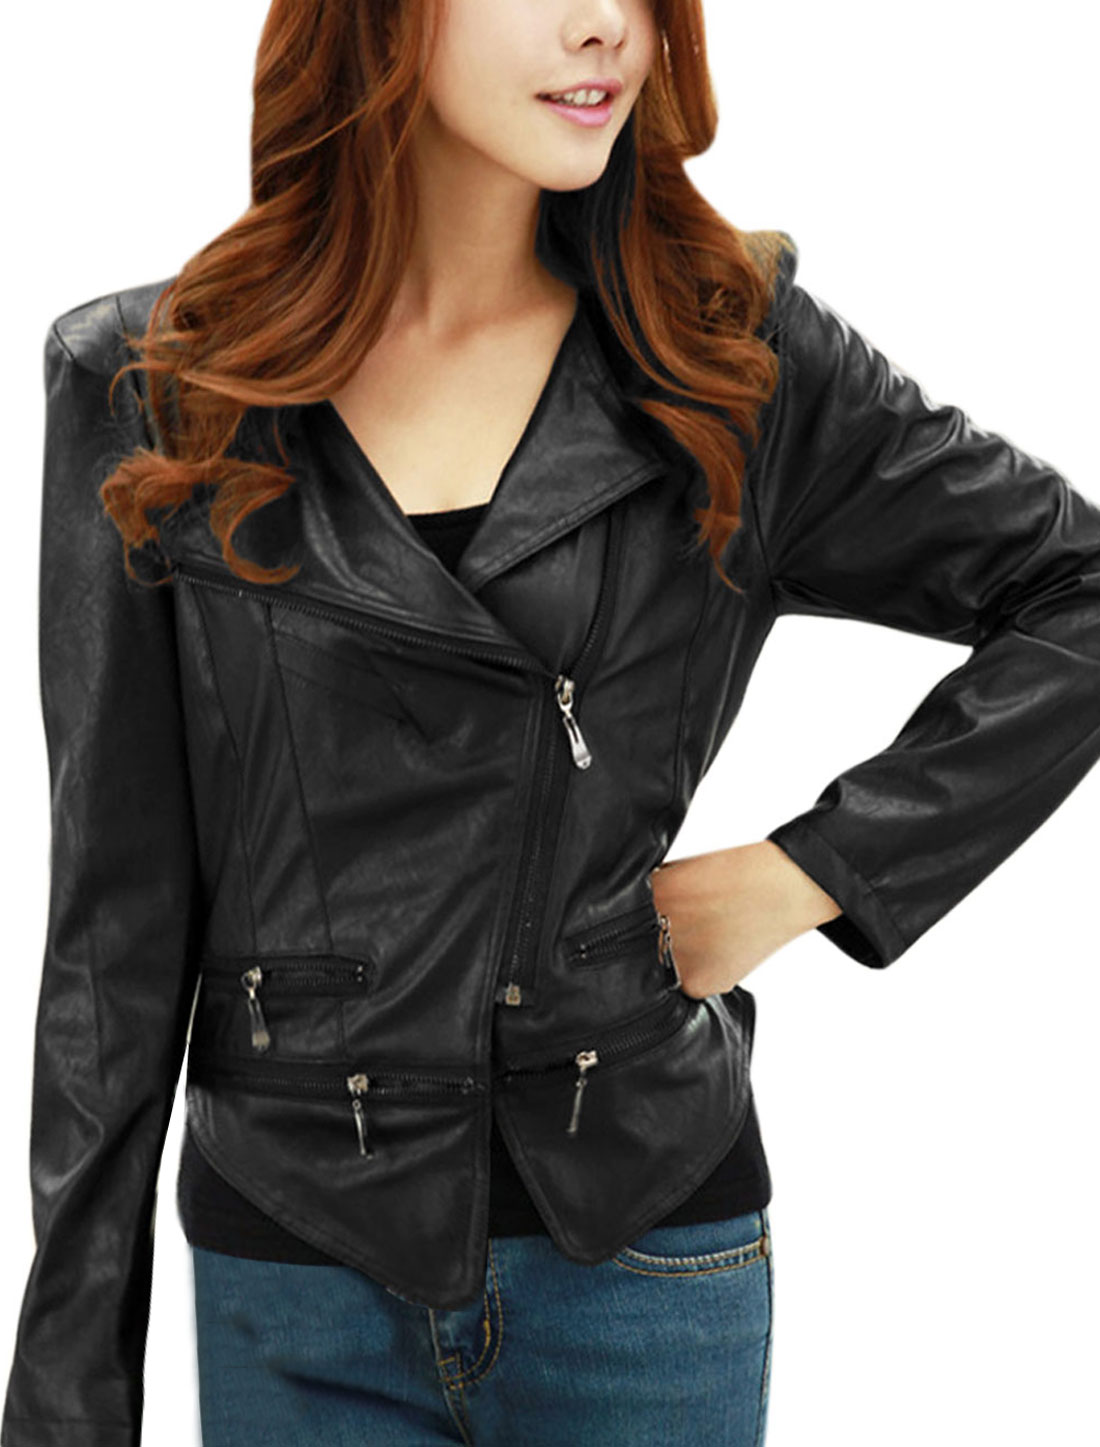 Lady Zip Up Convertible Collar Slim Imitation Leather Jacket Black M